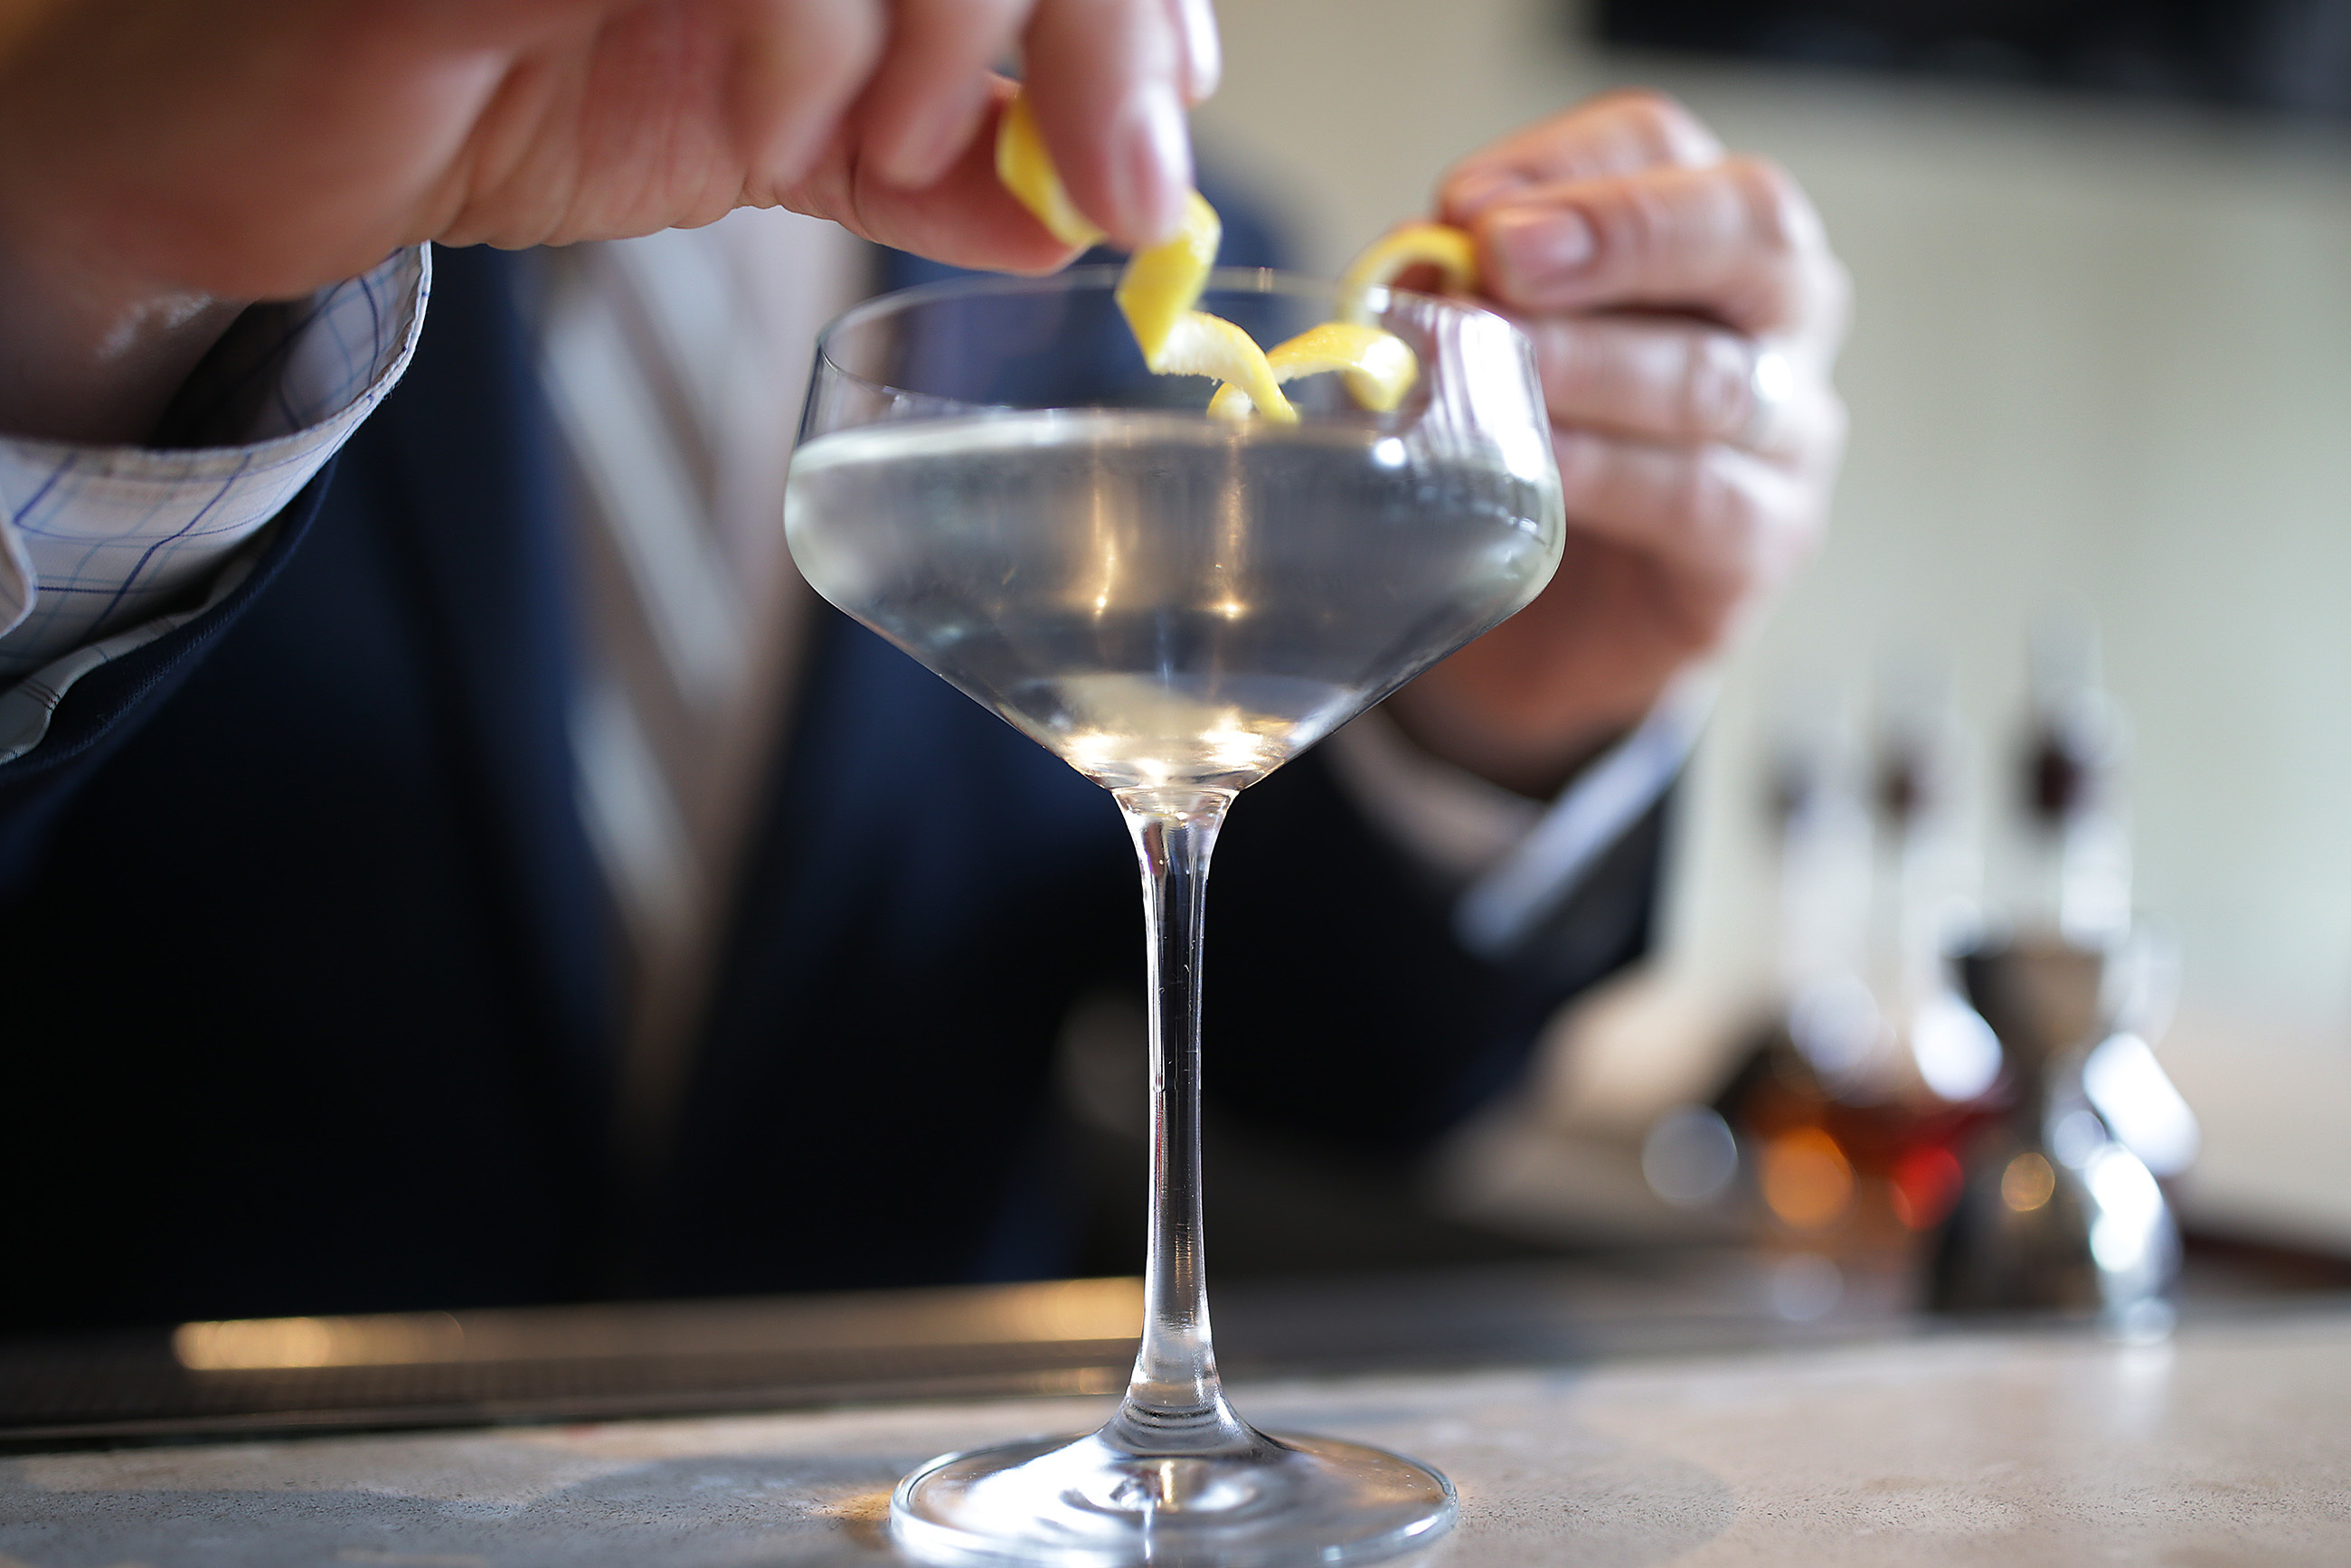 Beverage manager JB Bernstein adds a twist of lemon as he makes a classic martini at Vernick.